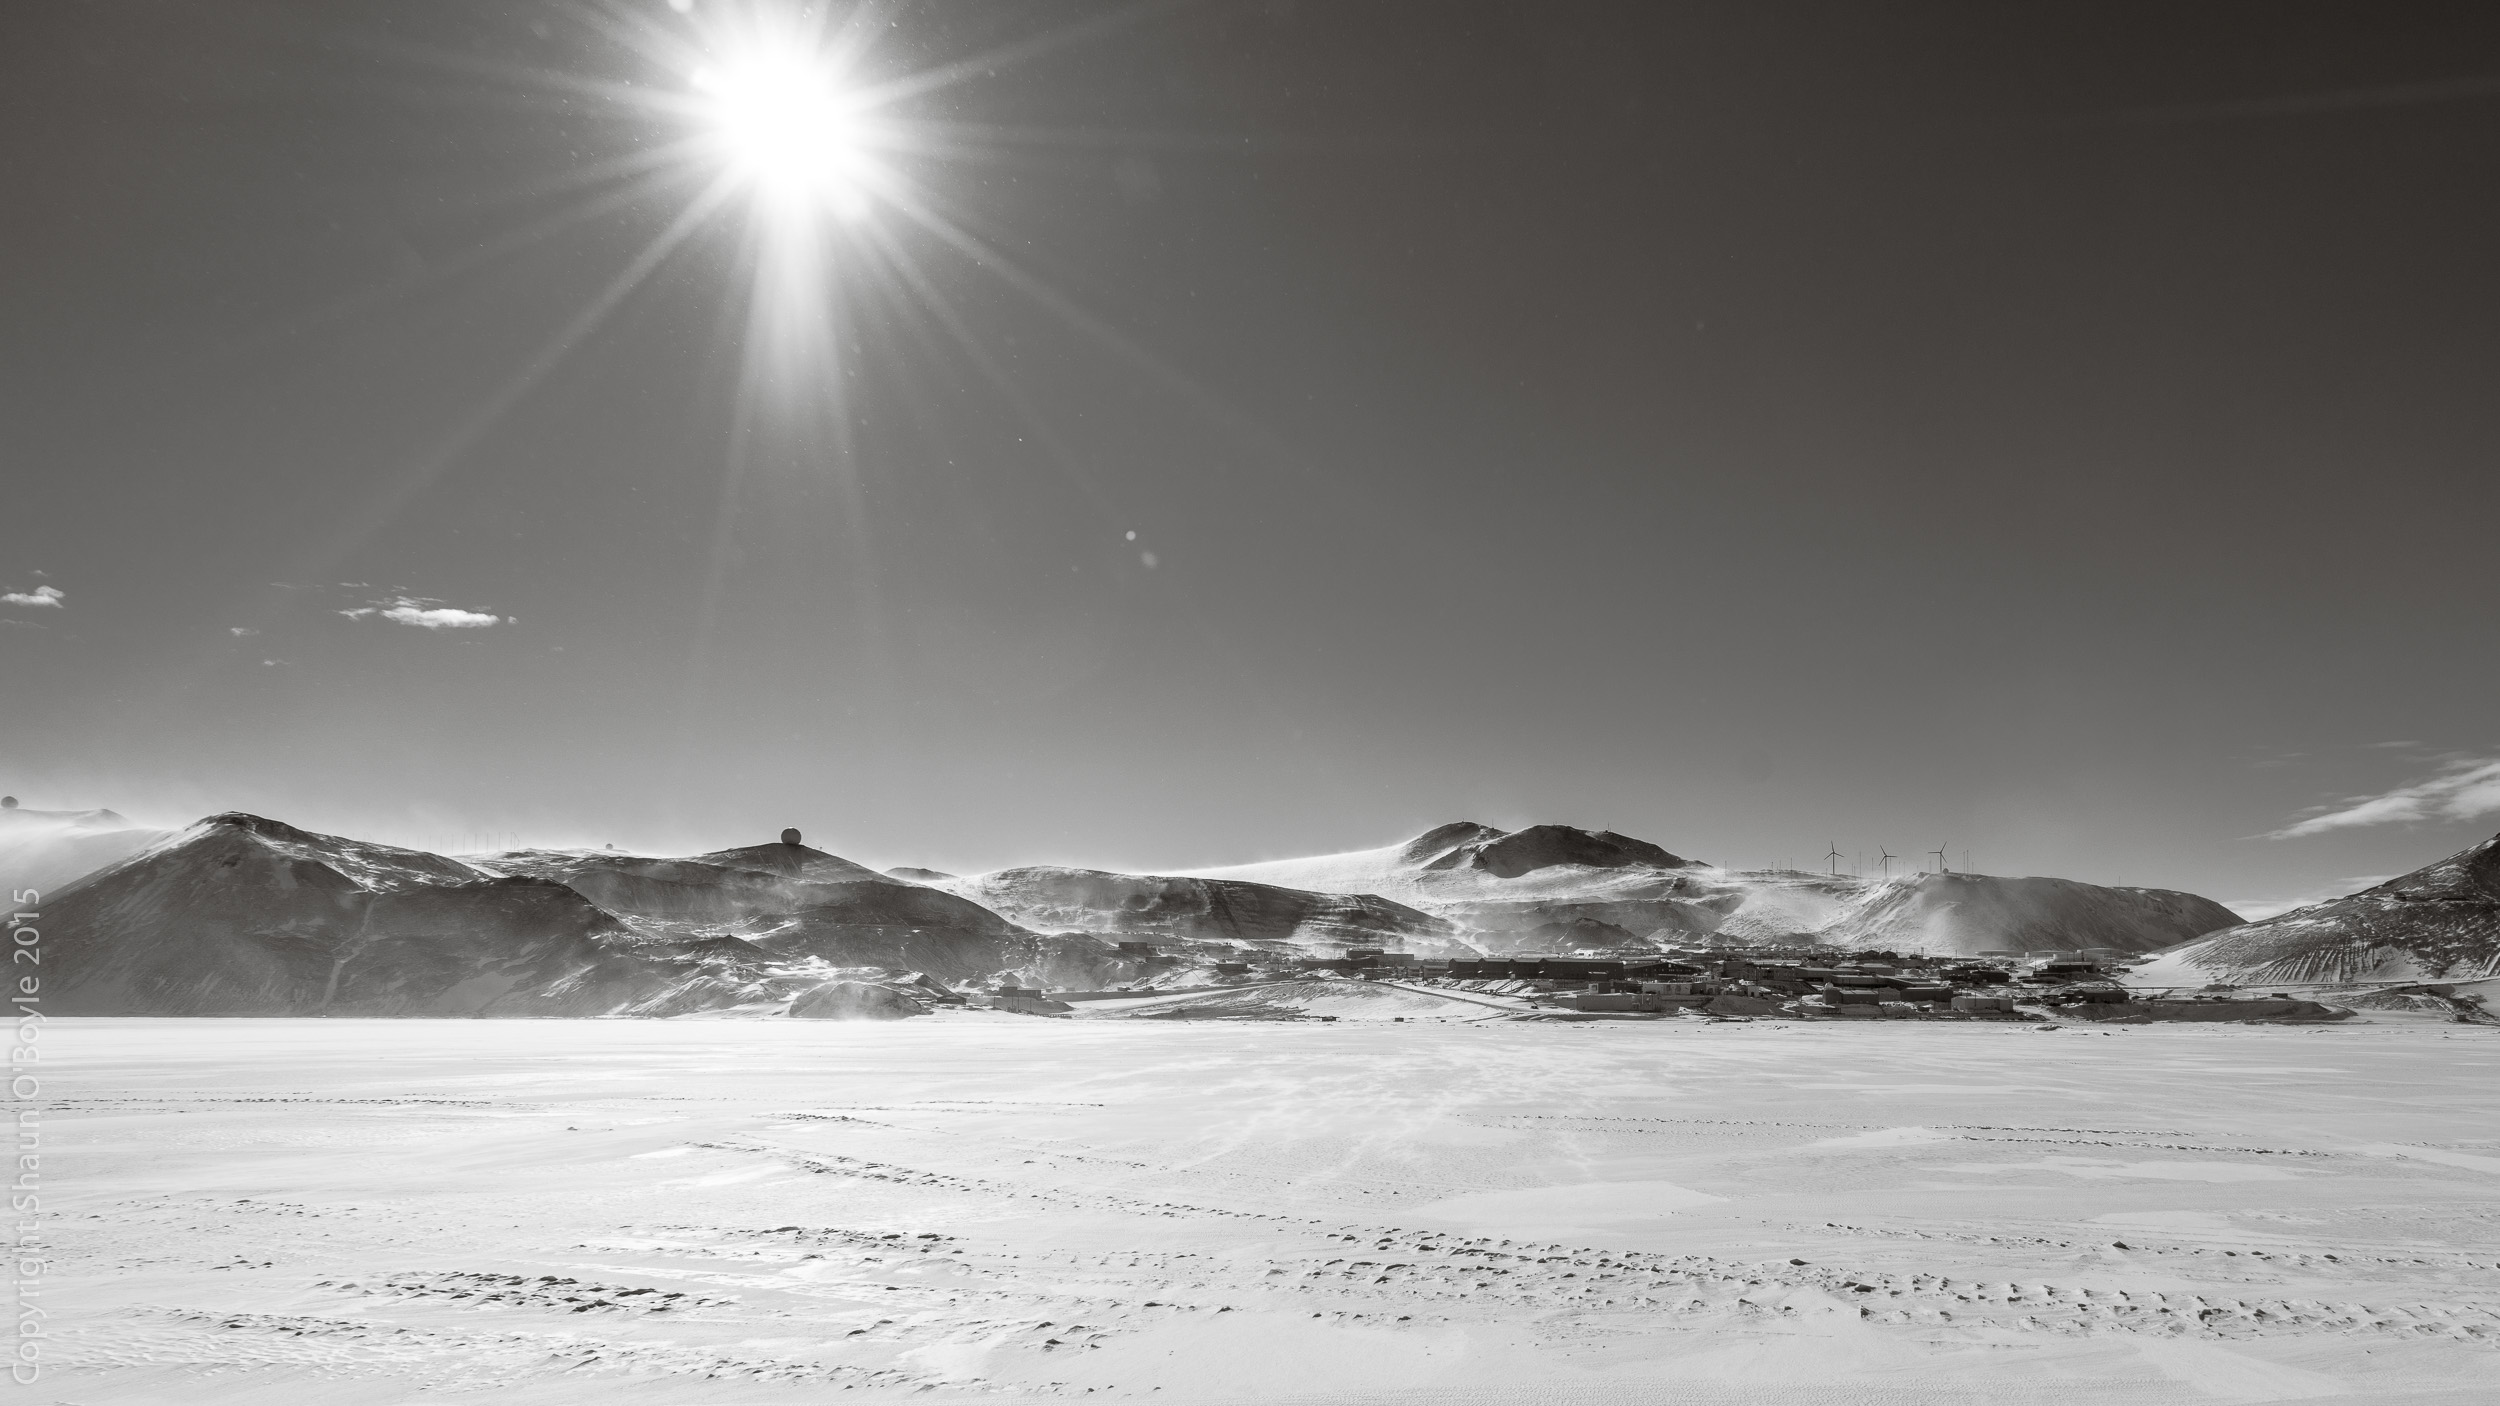 McMurdo Station from Sea Ice. The haze around the mountains is wind blown snow.